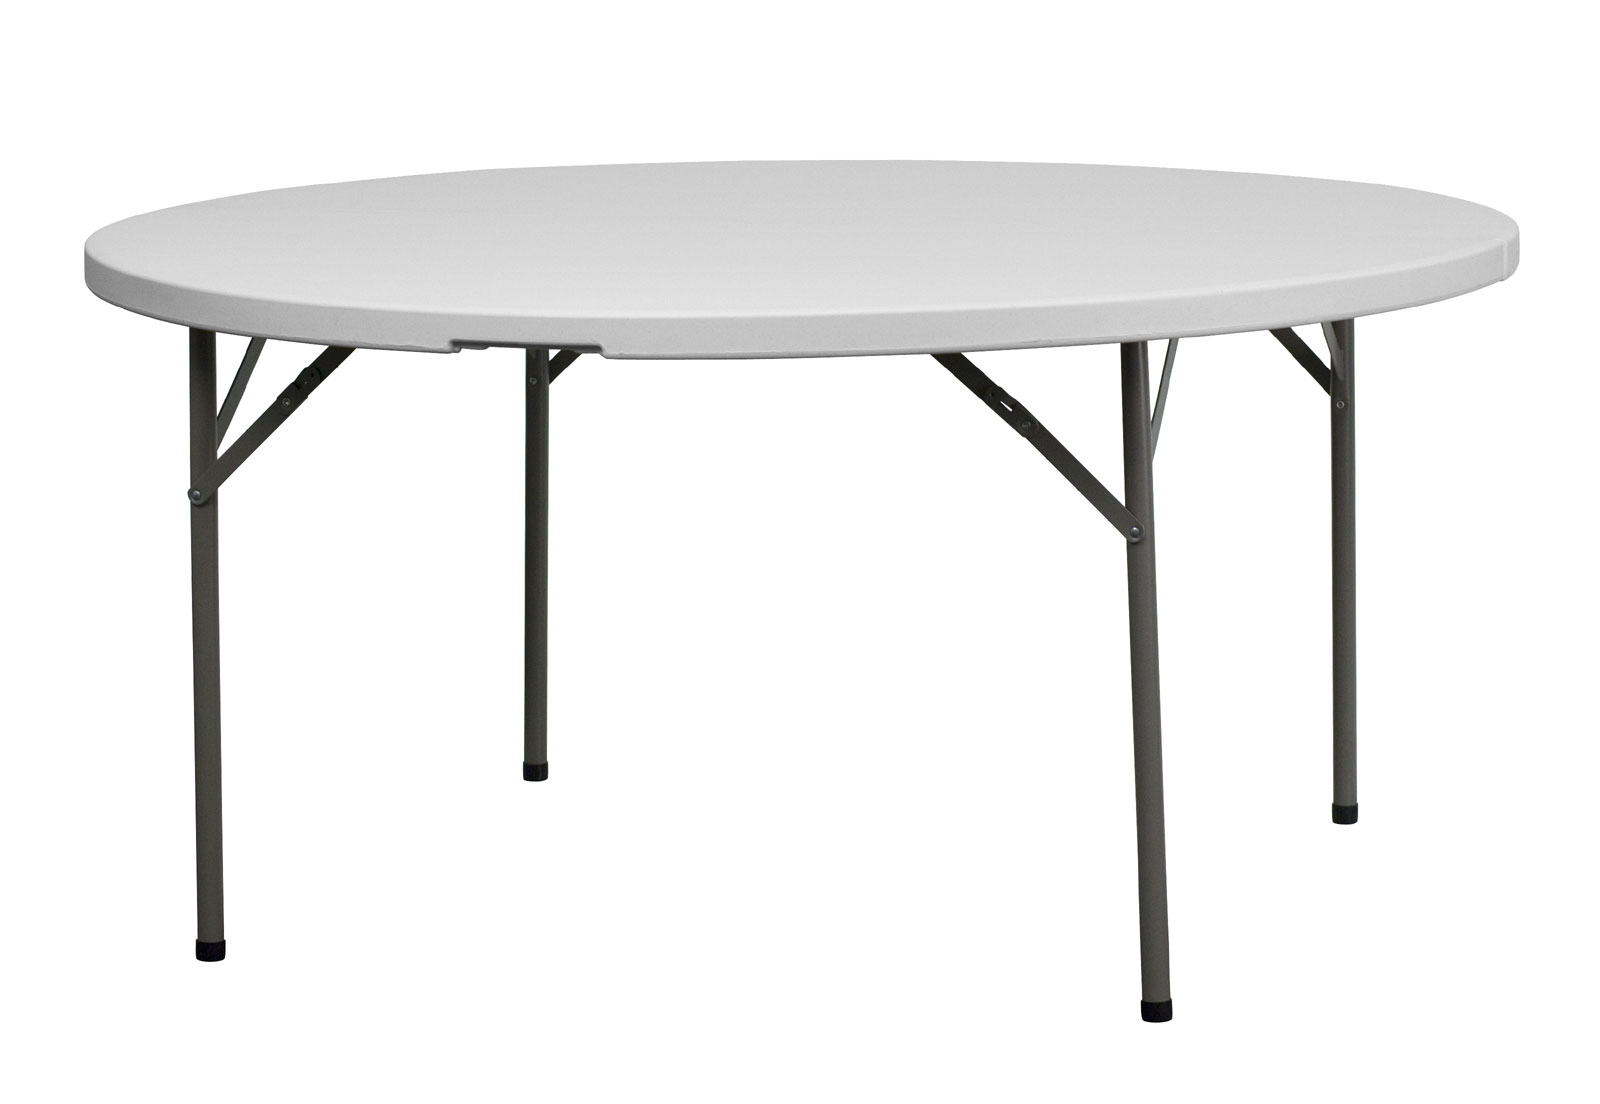 60 inch granite white round plastic folding table in for 60 inch round coffee table